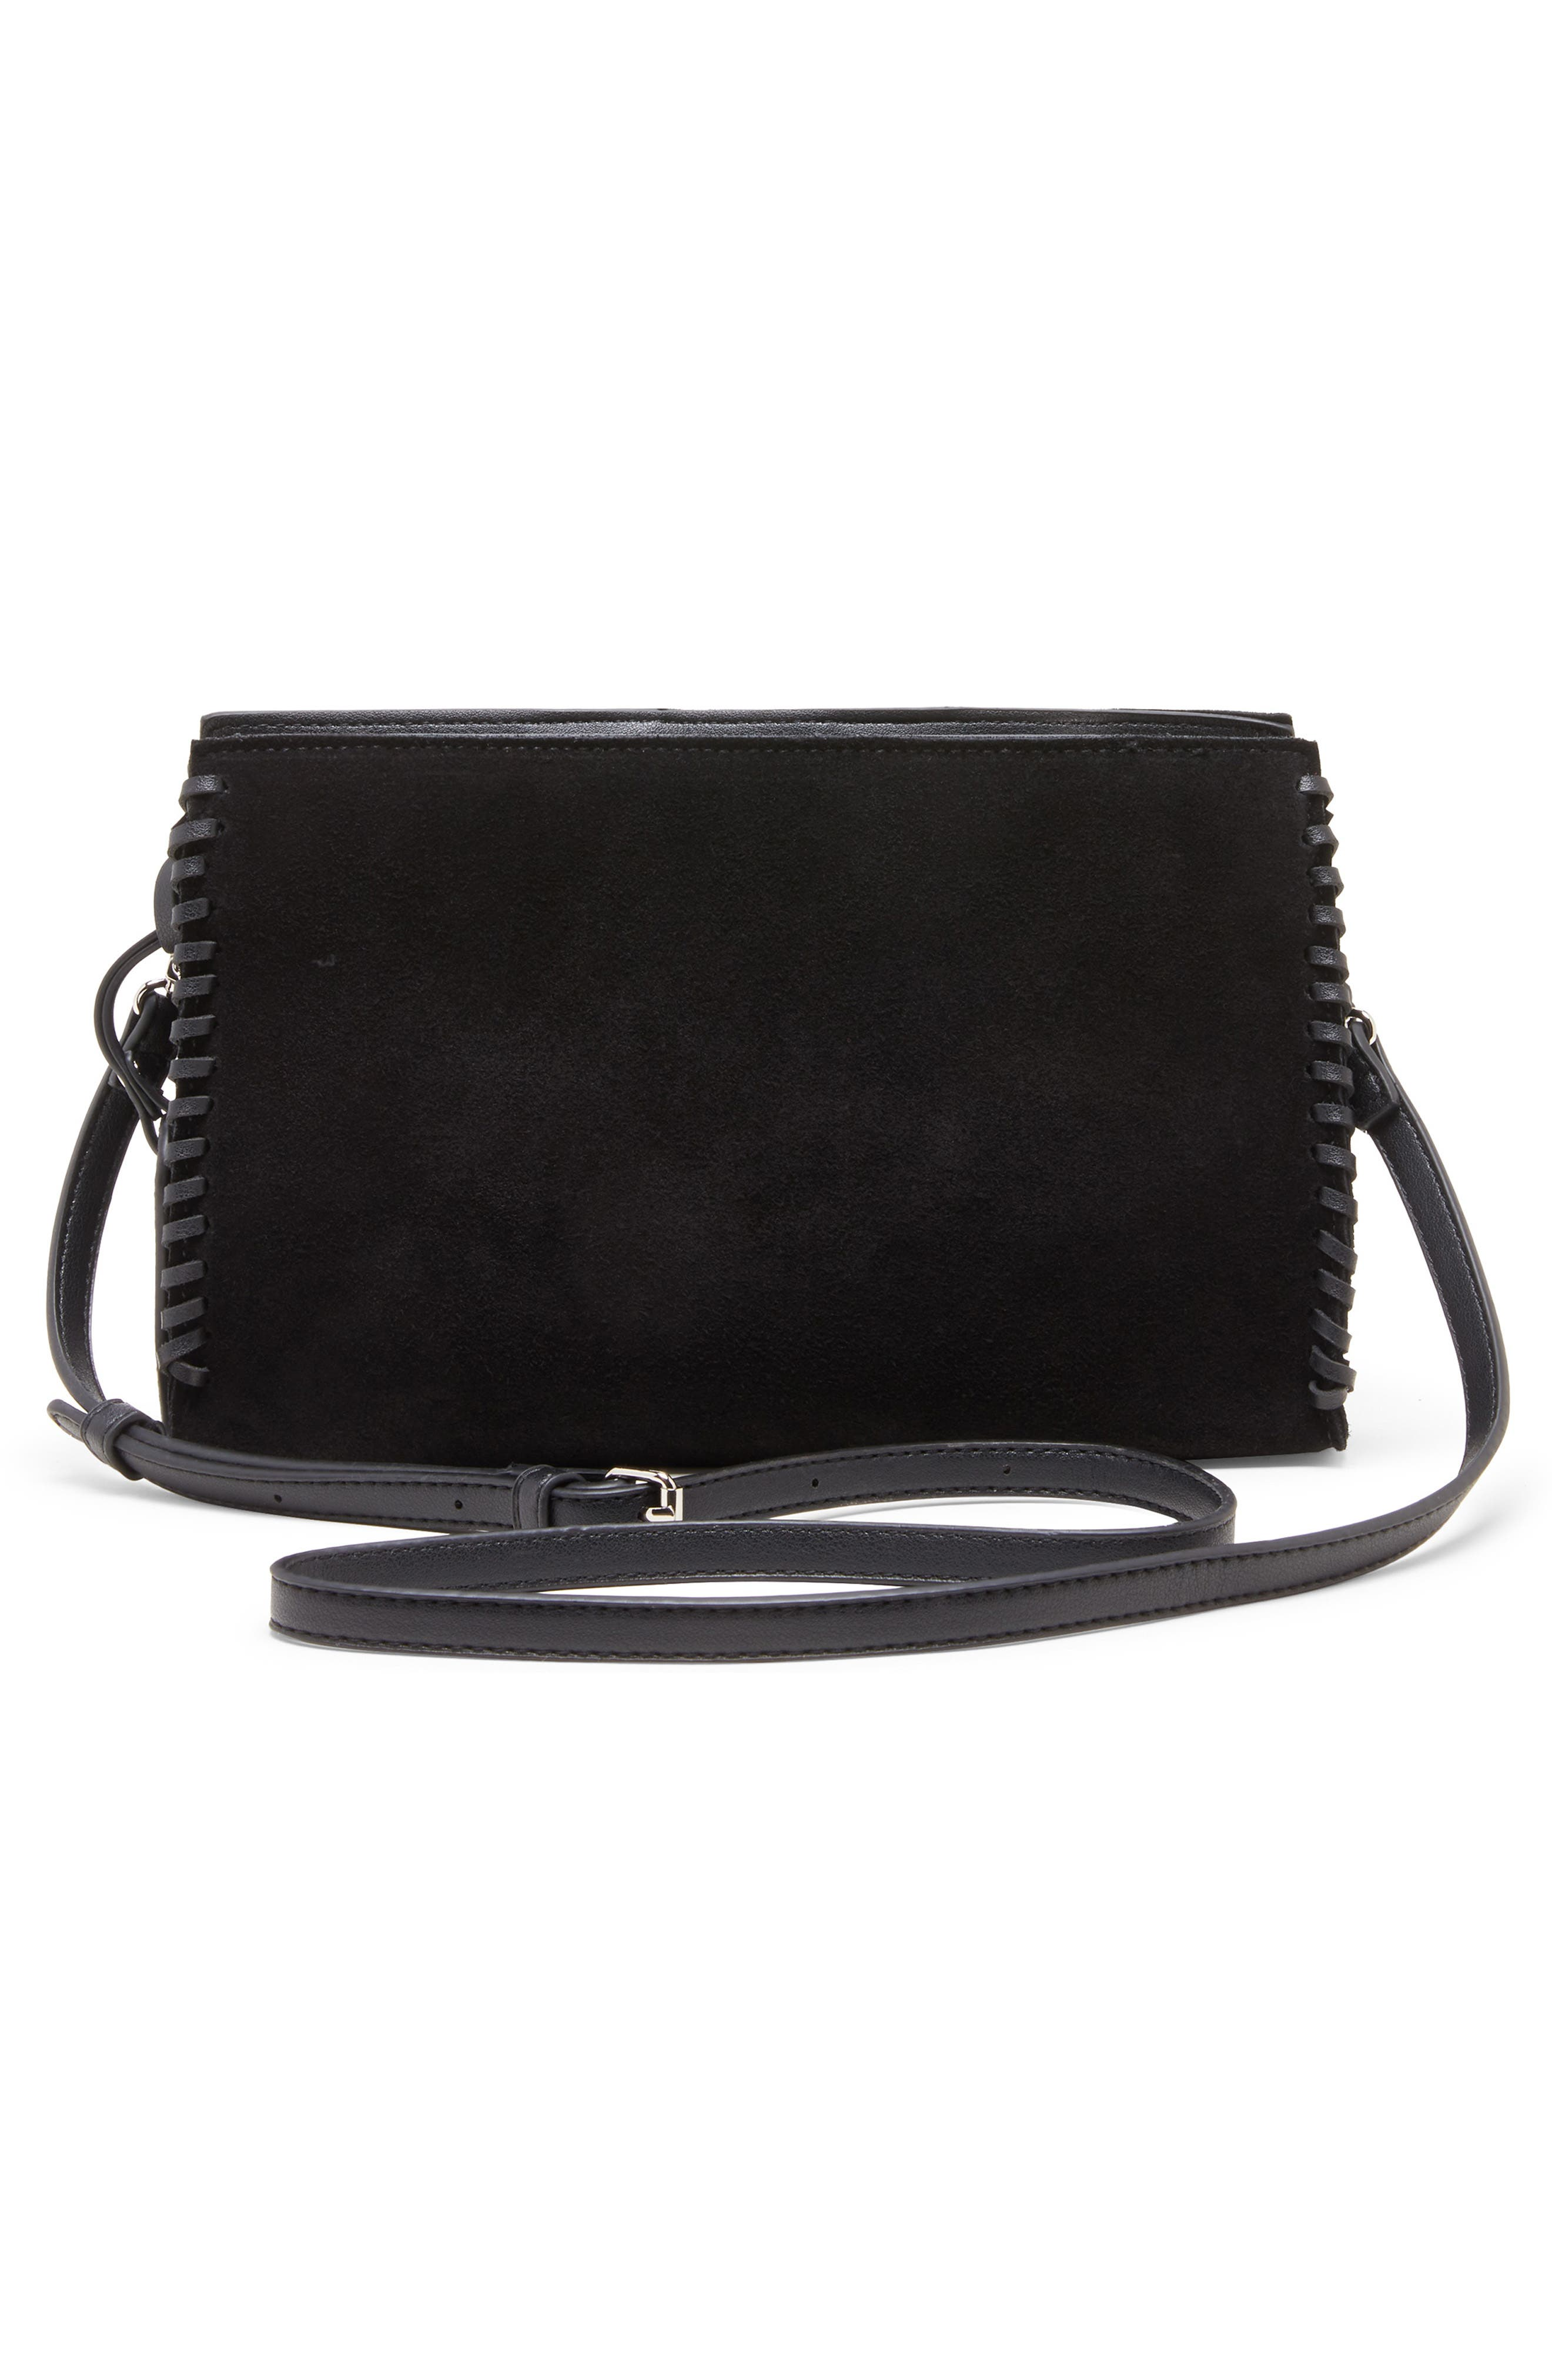 SOLE SOCIETY, Wahli Clutch, Alternate thumbnail 2, color, BLACK